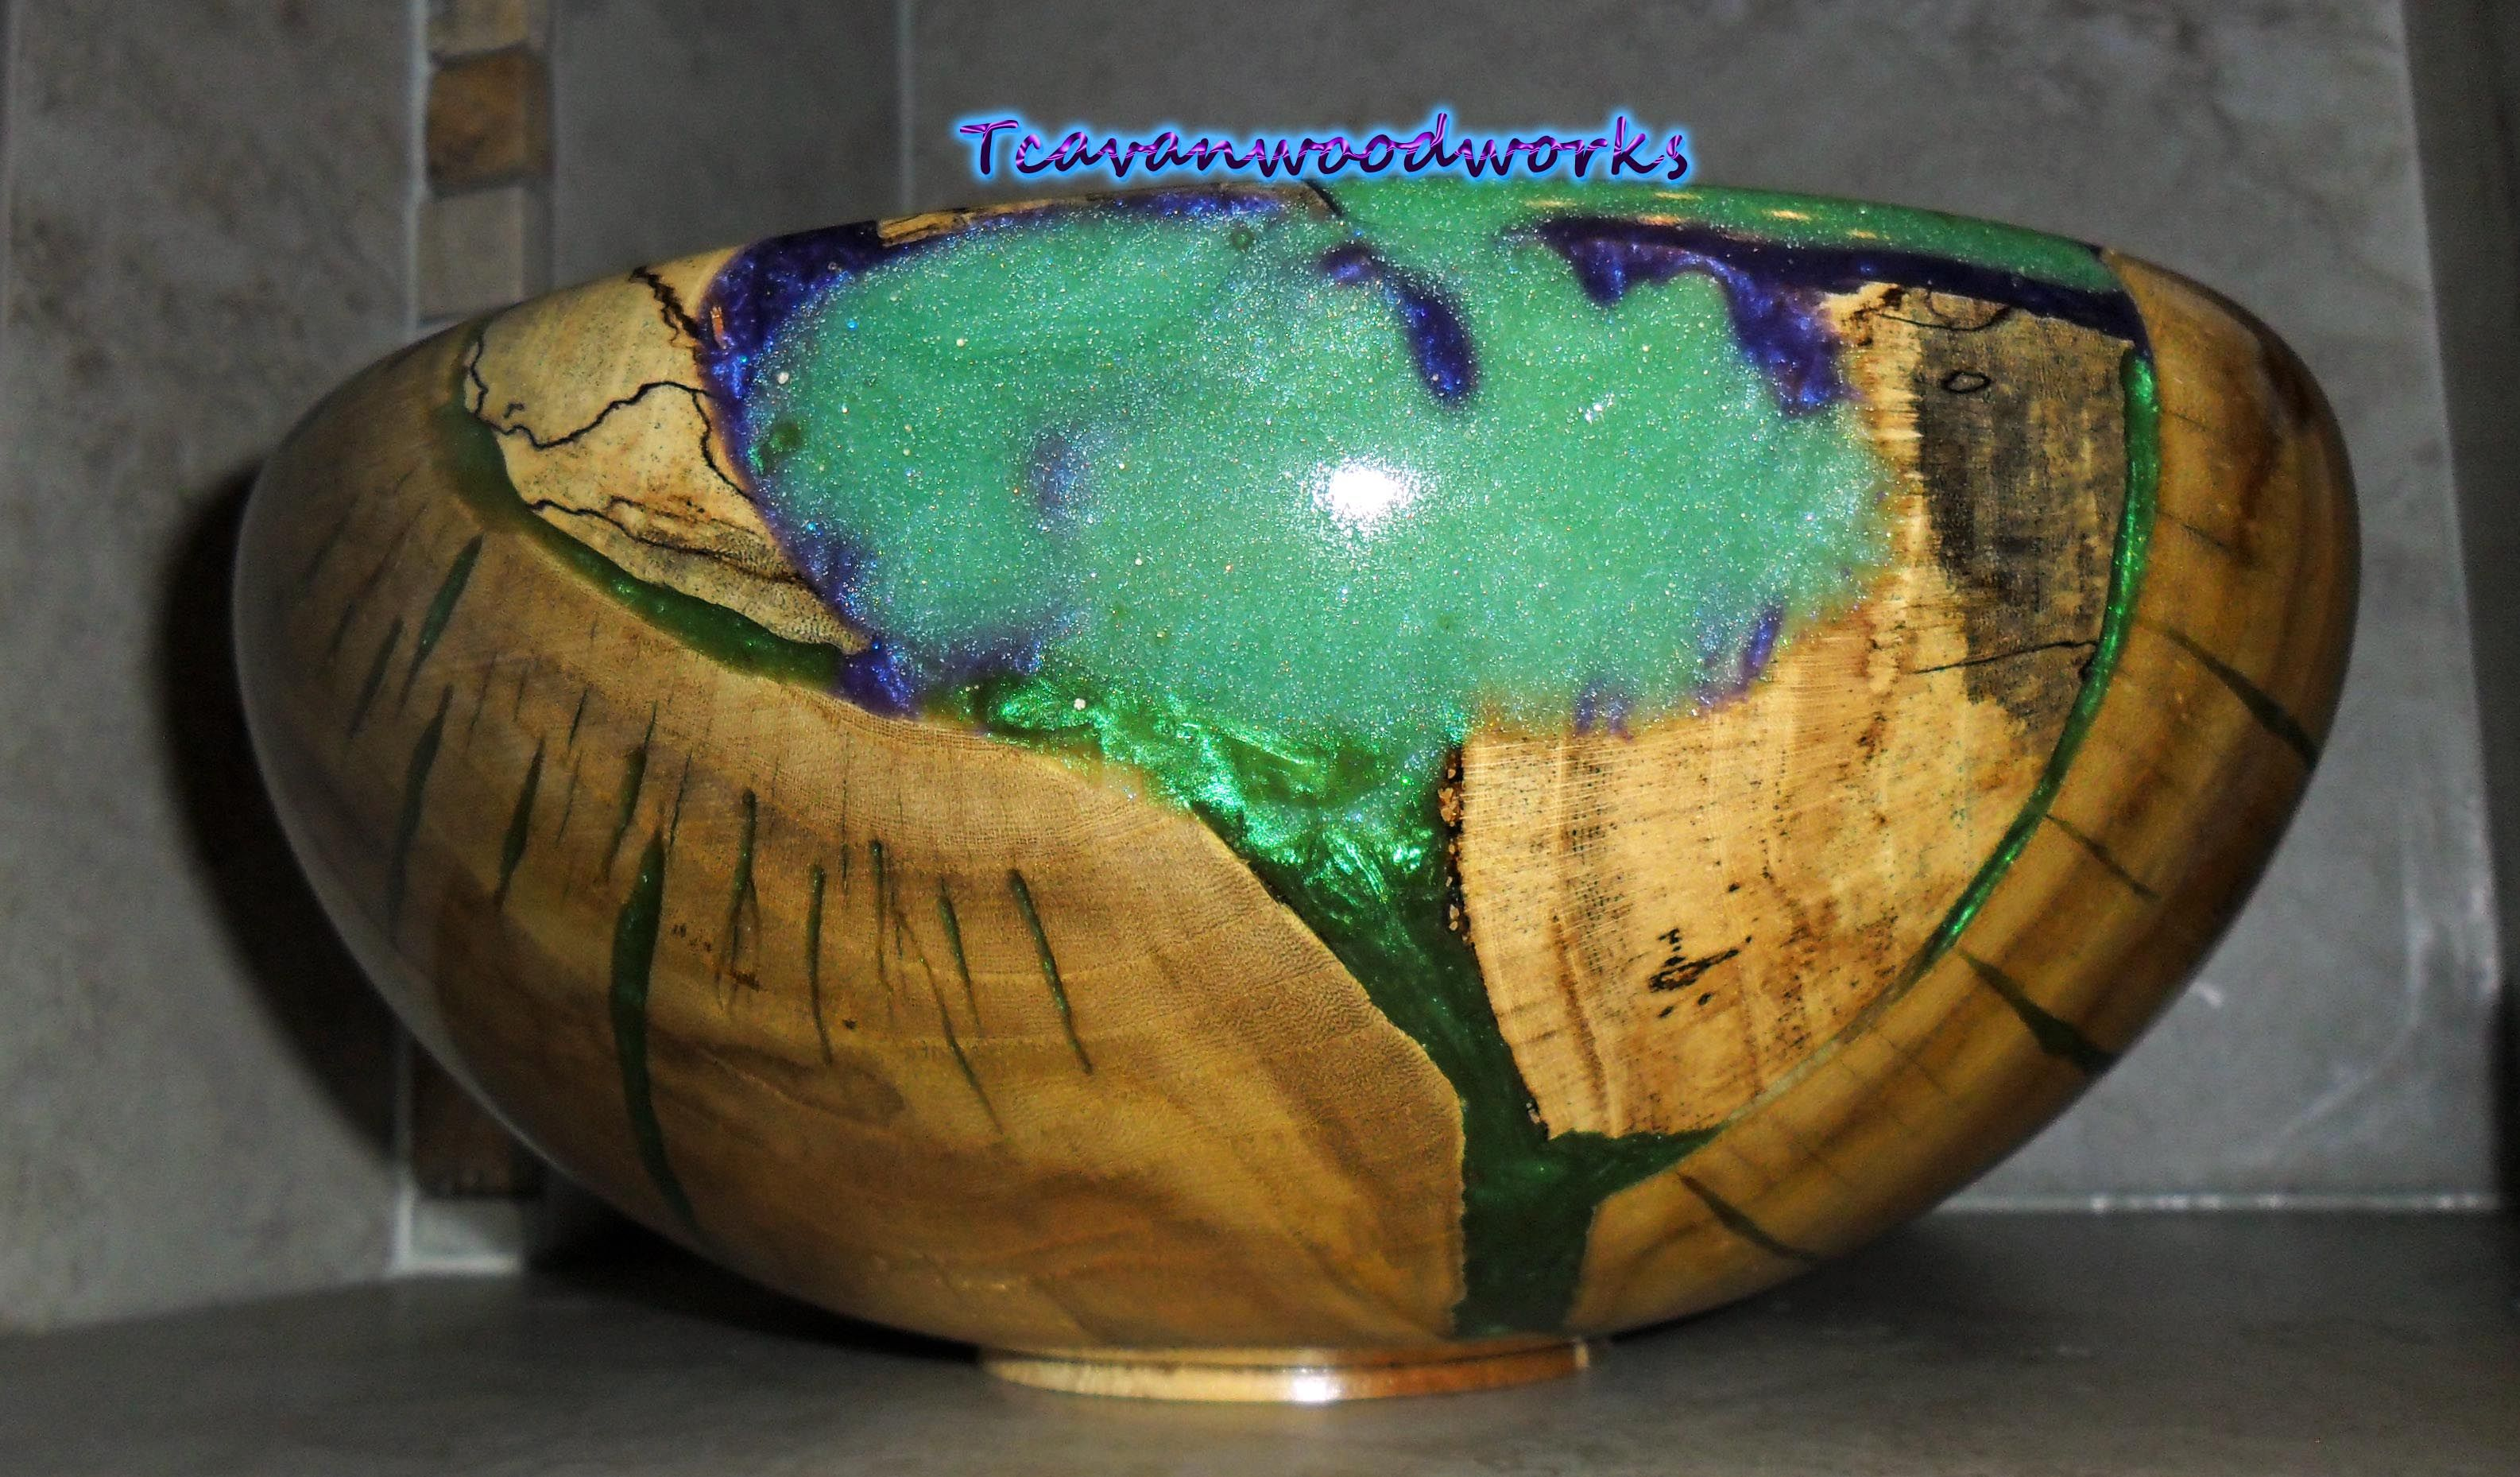 hand turned Wood Bowl With Resin Wood and Resin Wood Bowl with Black Resin Inlay Wood Bowl Handmade Wood Bowl Turned Wood Bowl Inlay